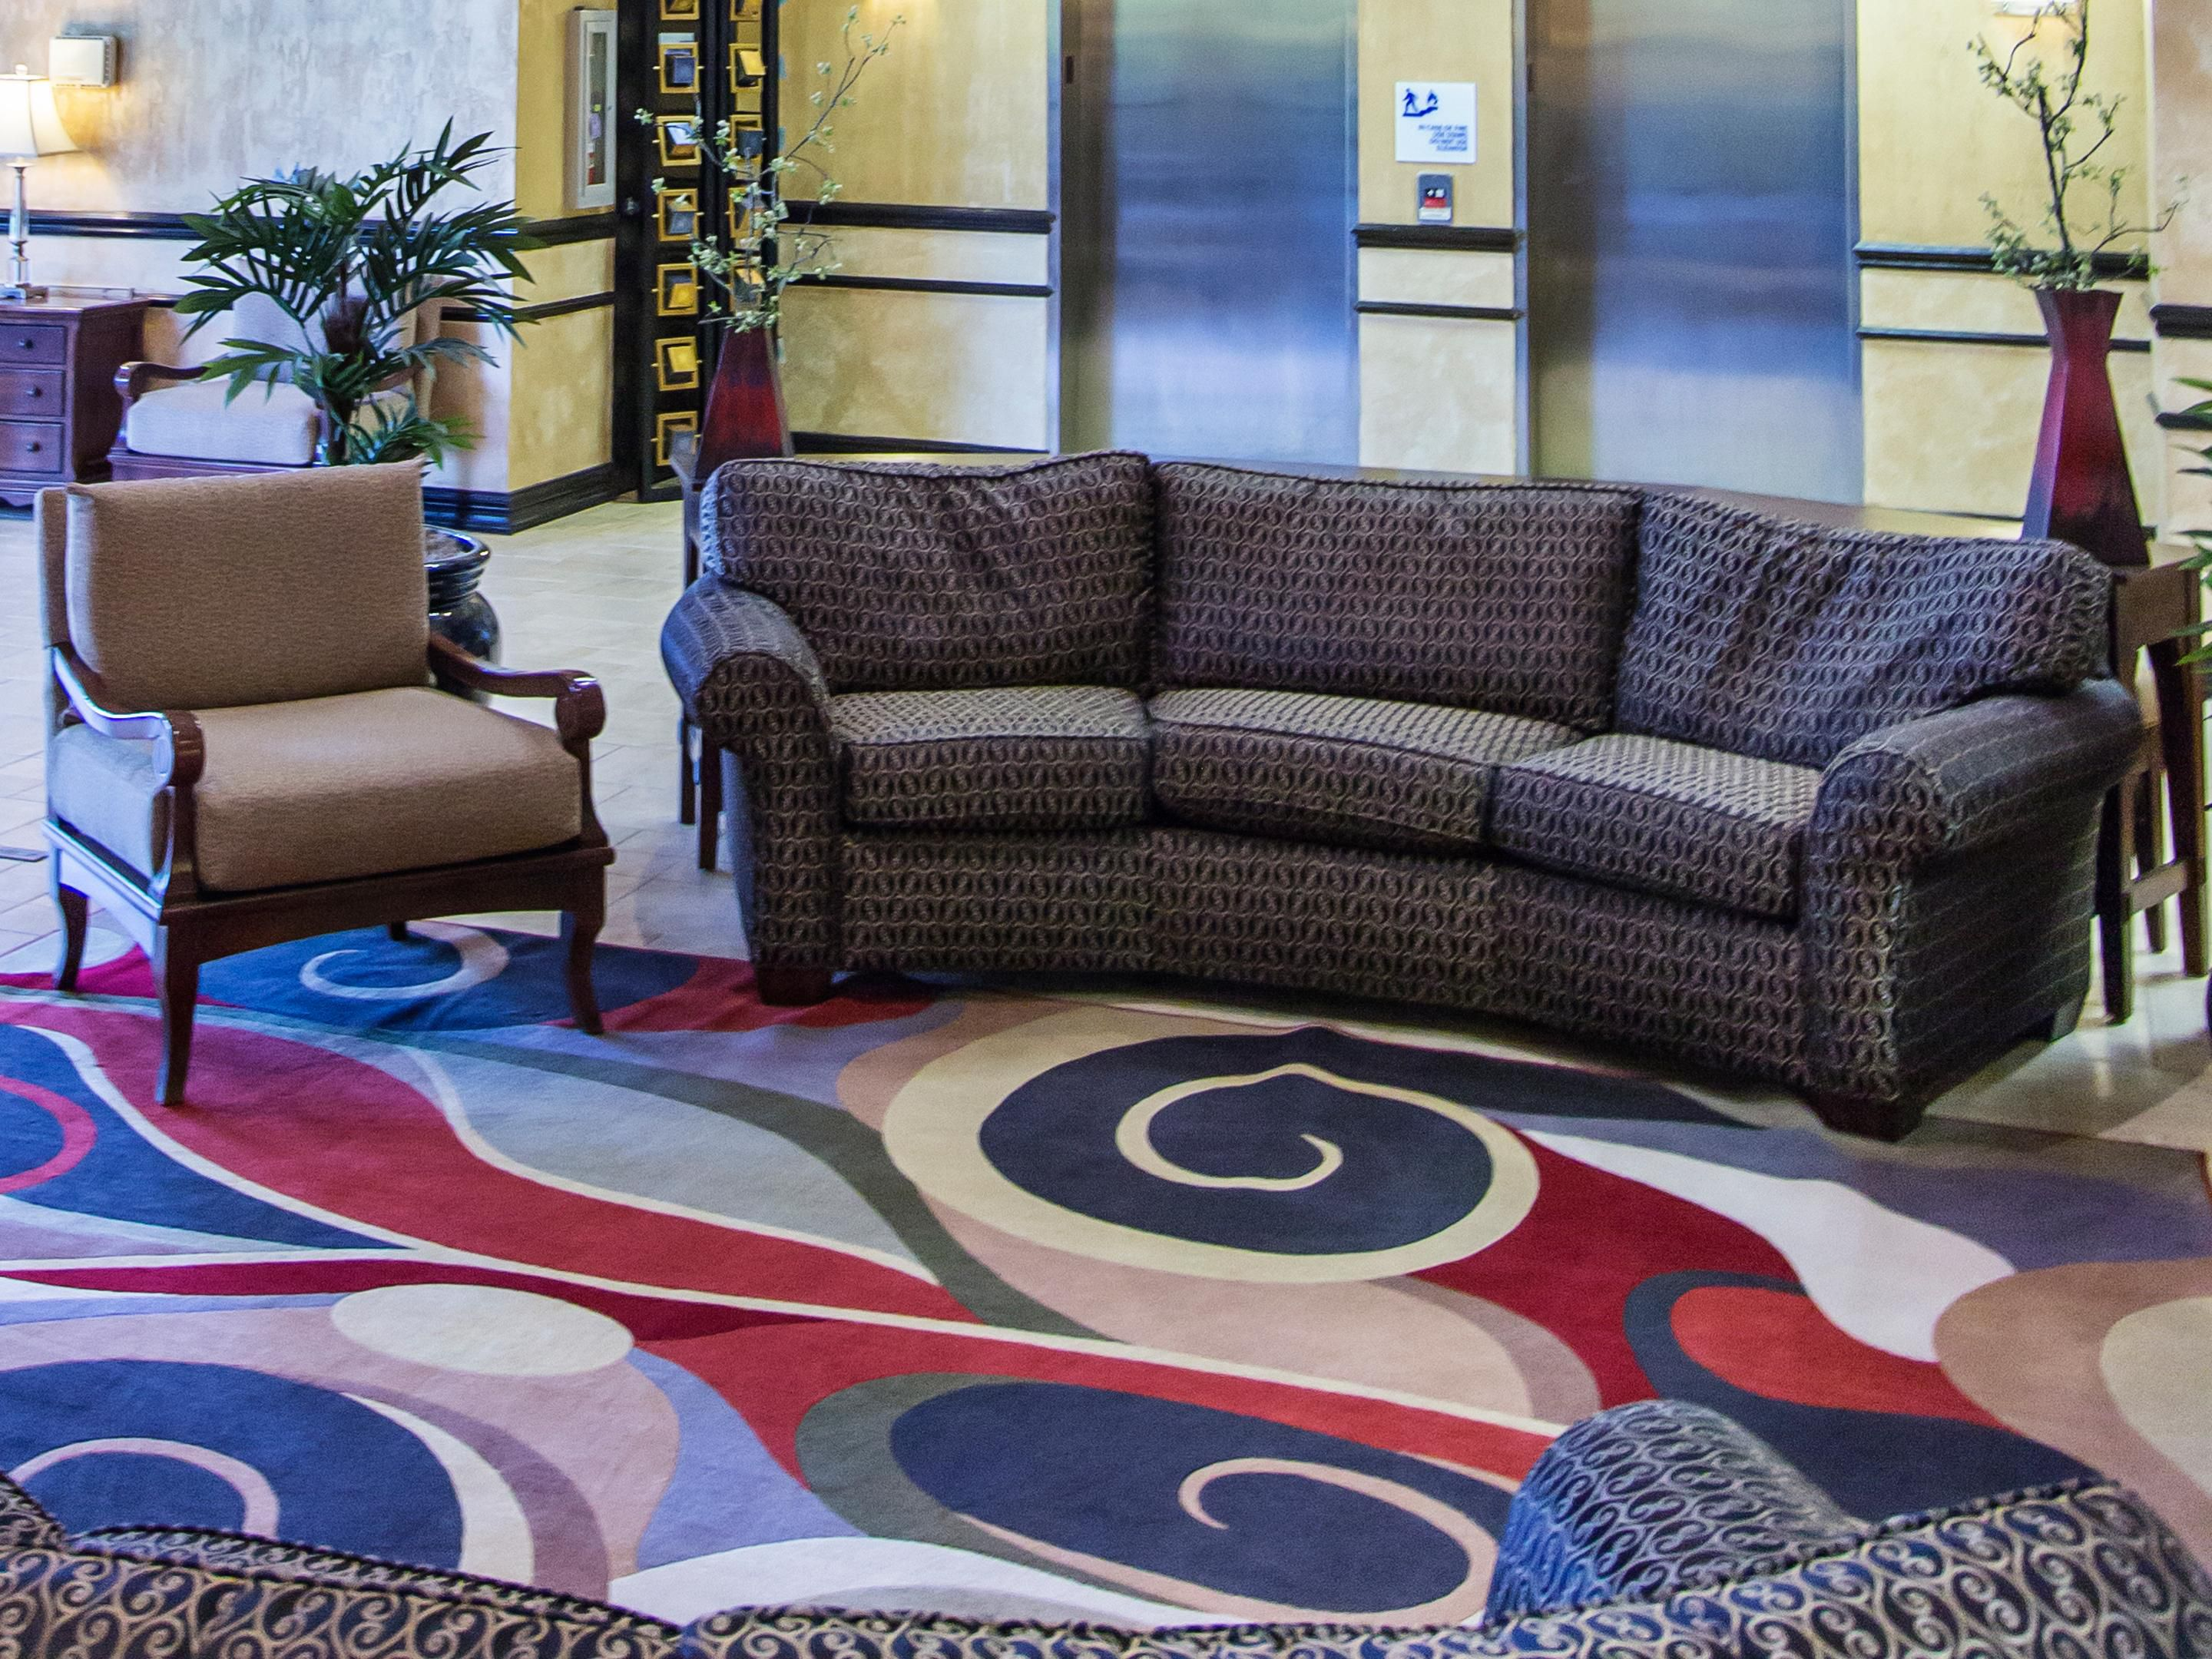 Spacious comfortable lobby seating